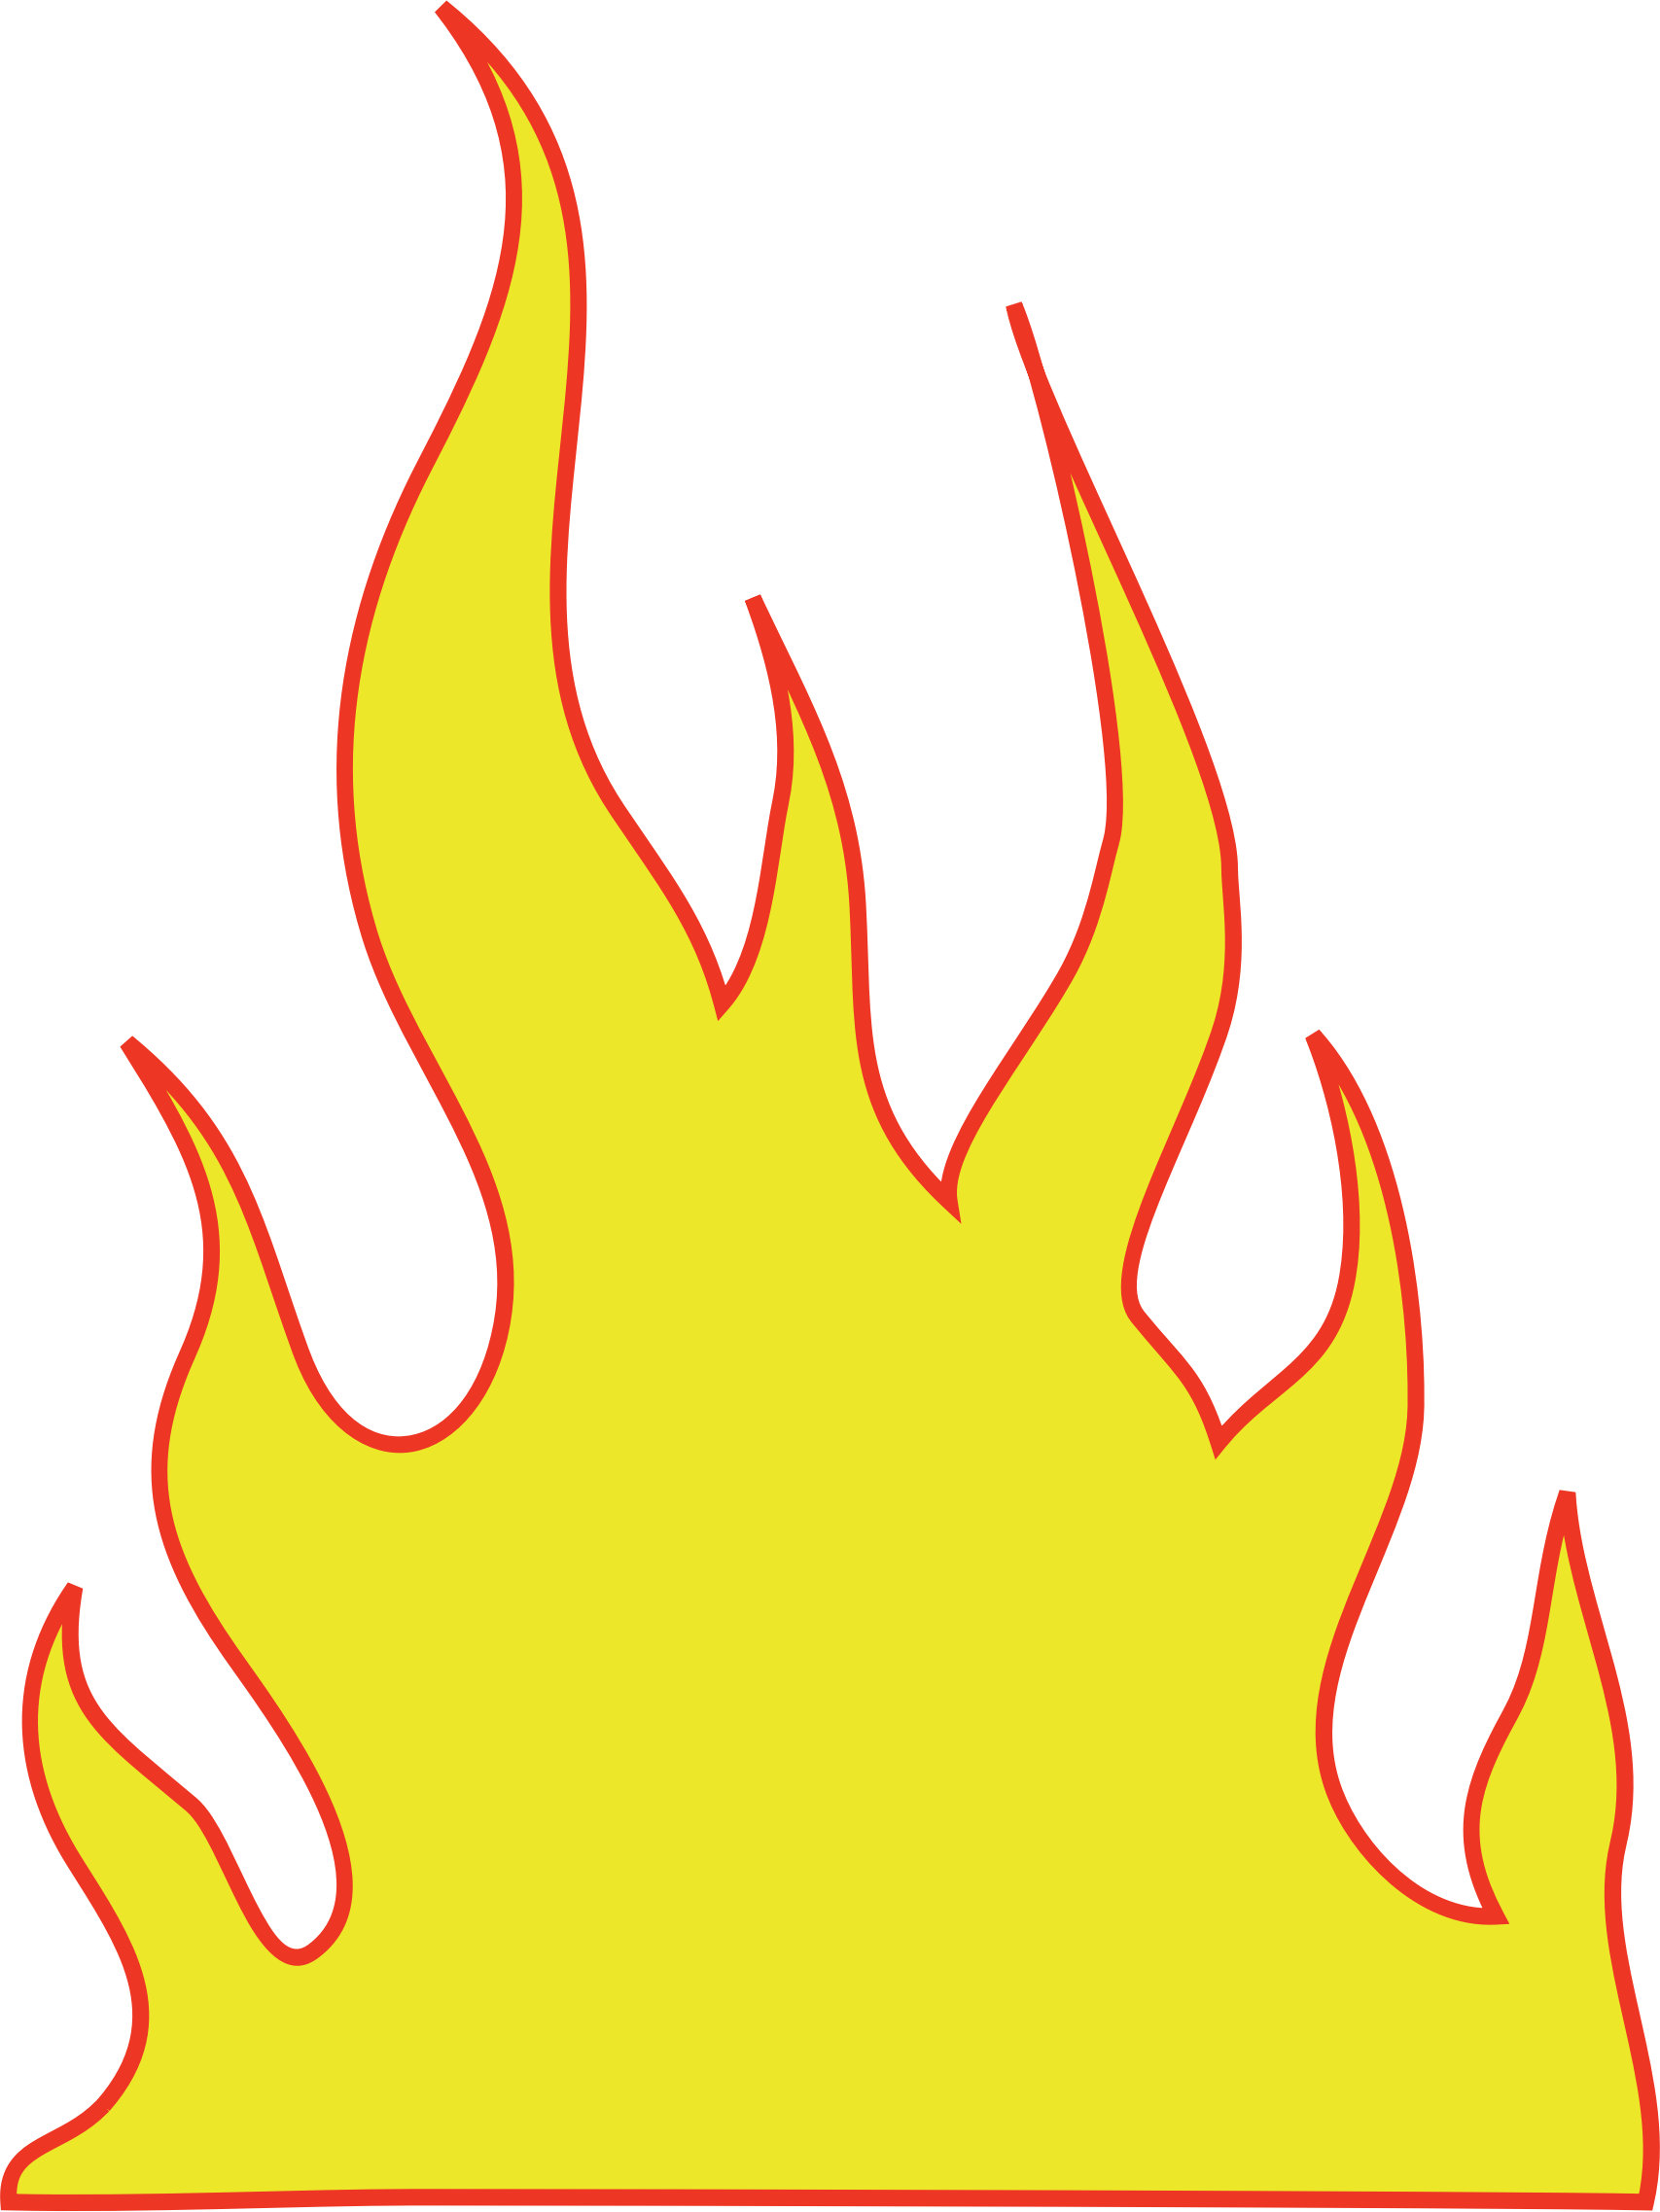 Fire clip yellow. Collection of free flaming